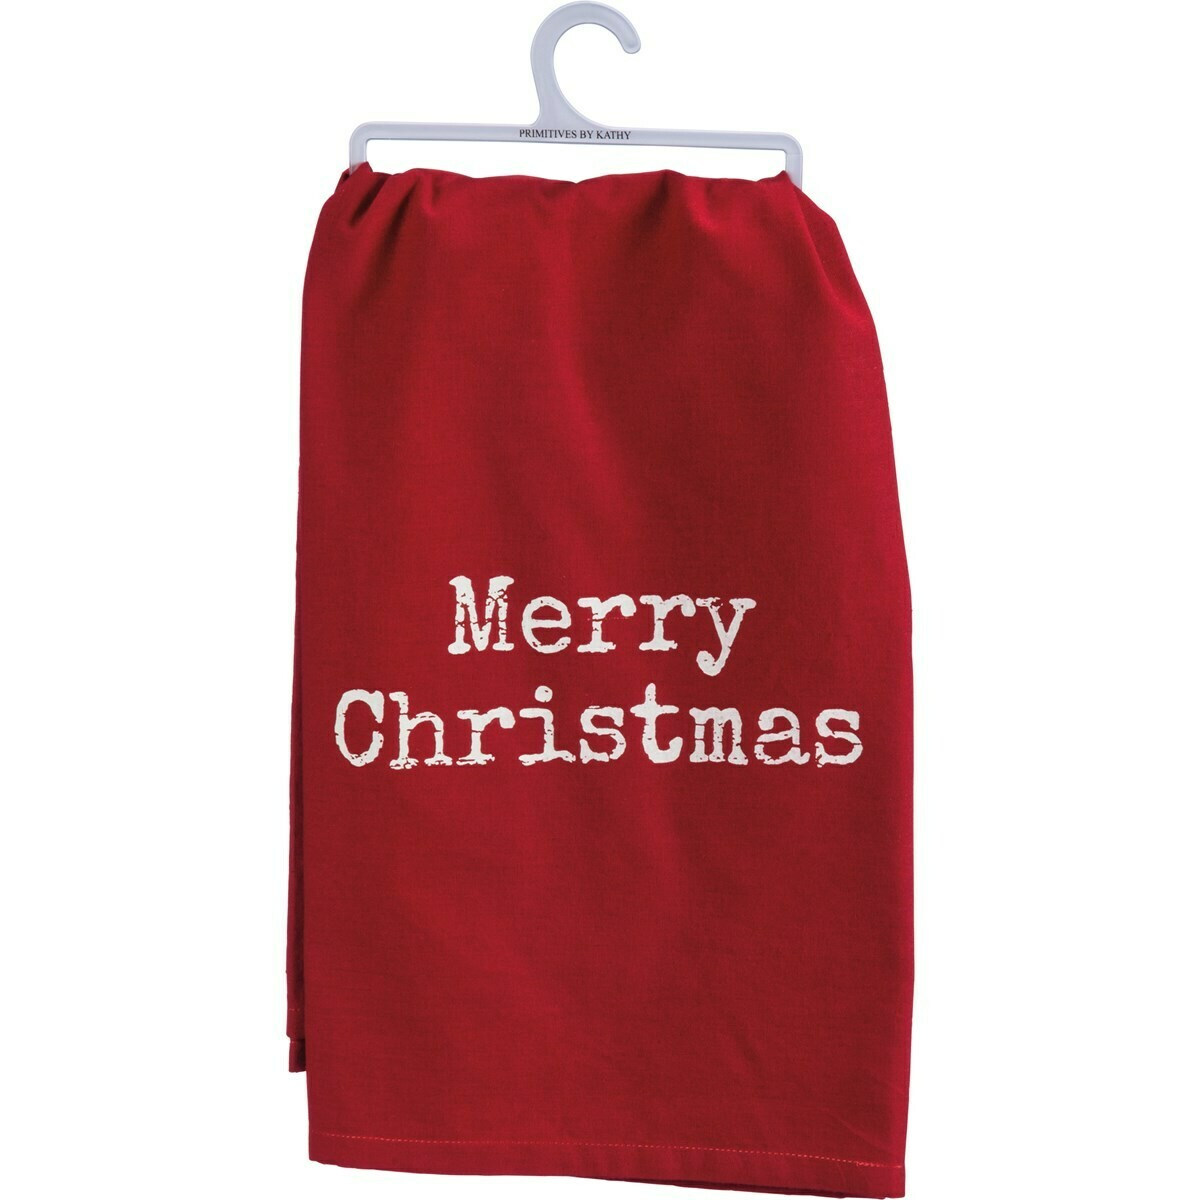 Red Merry Christmas Towel